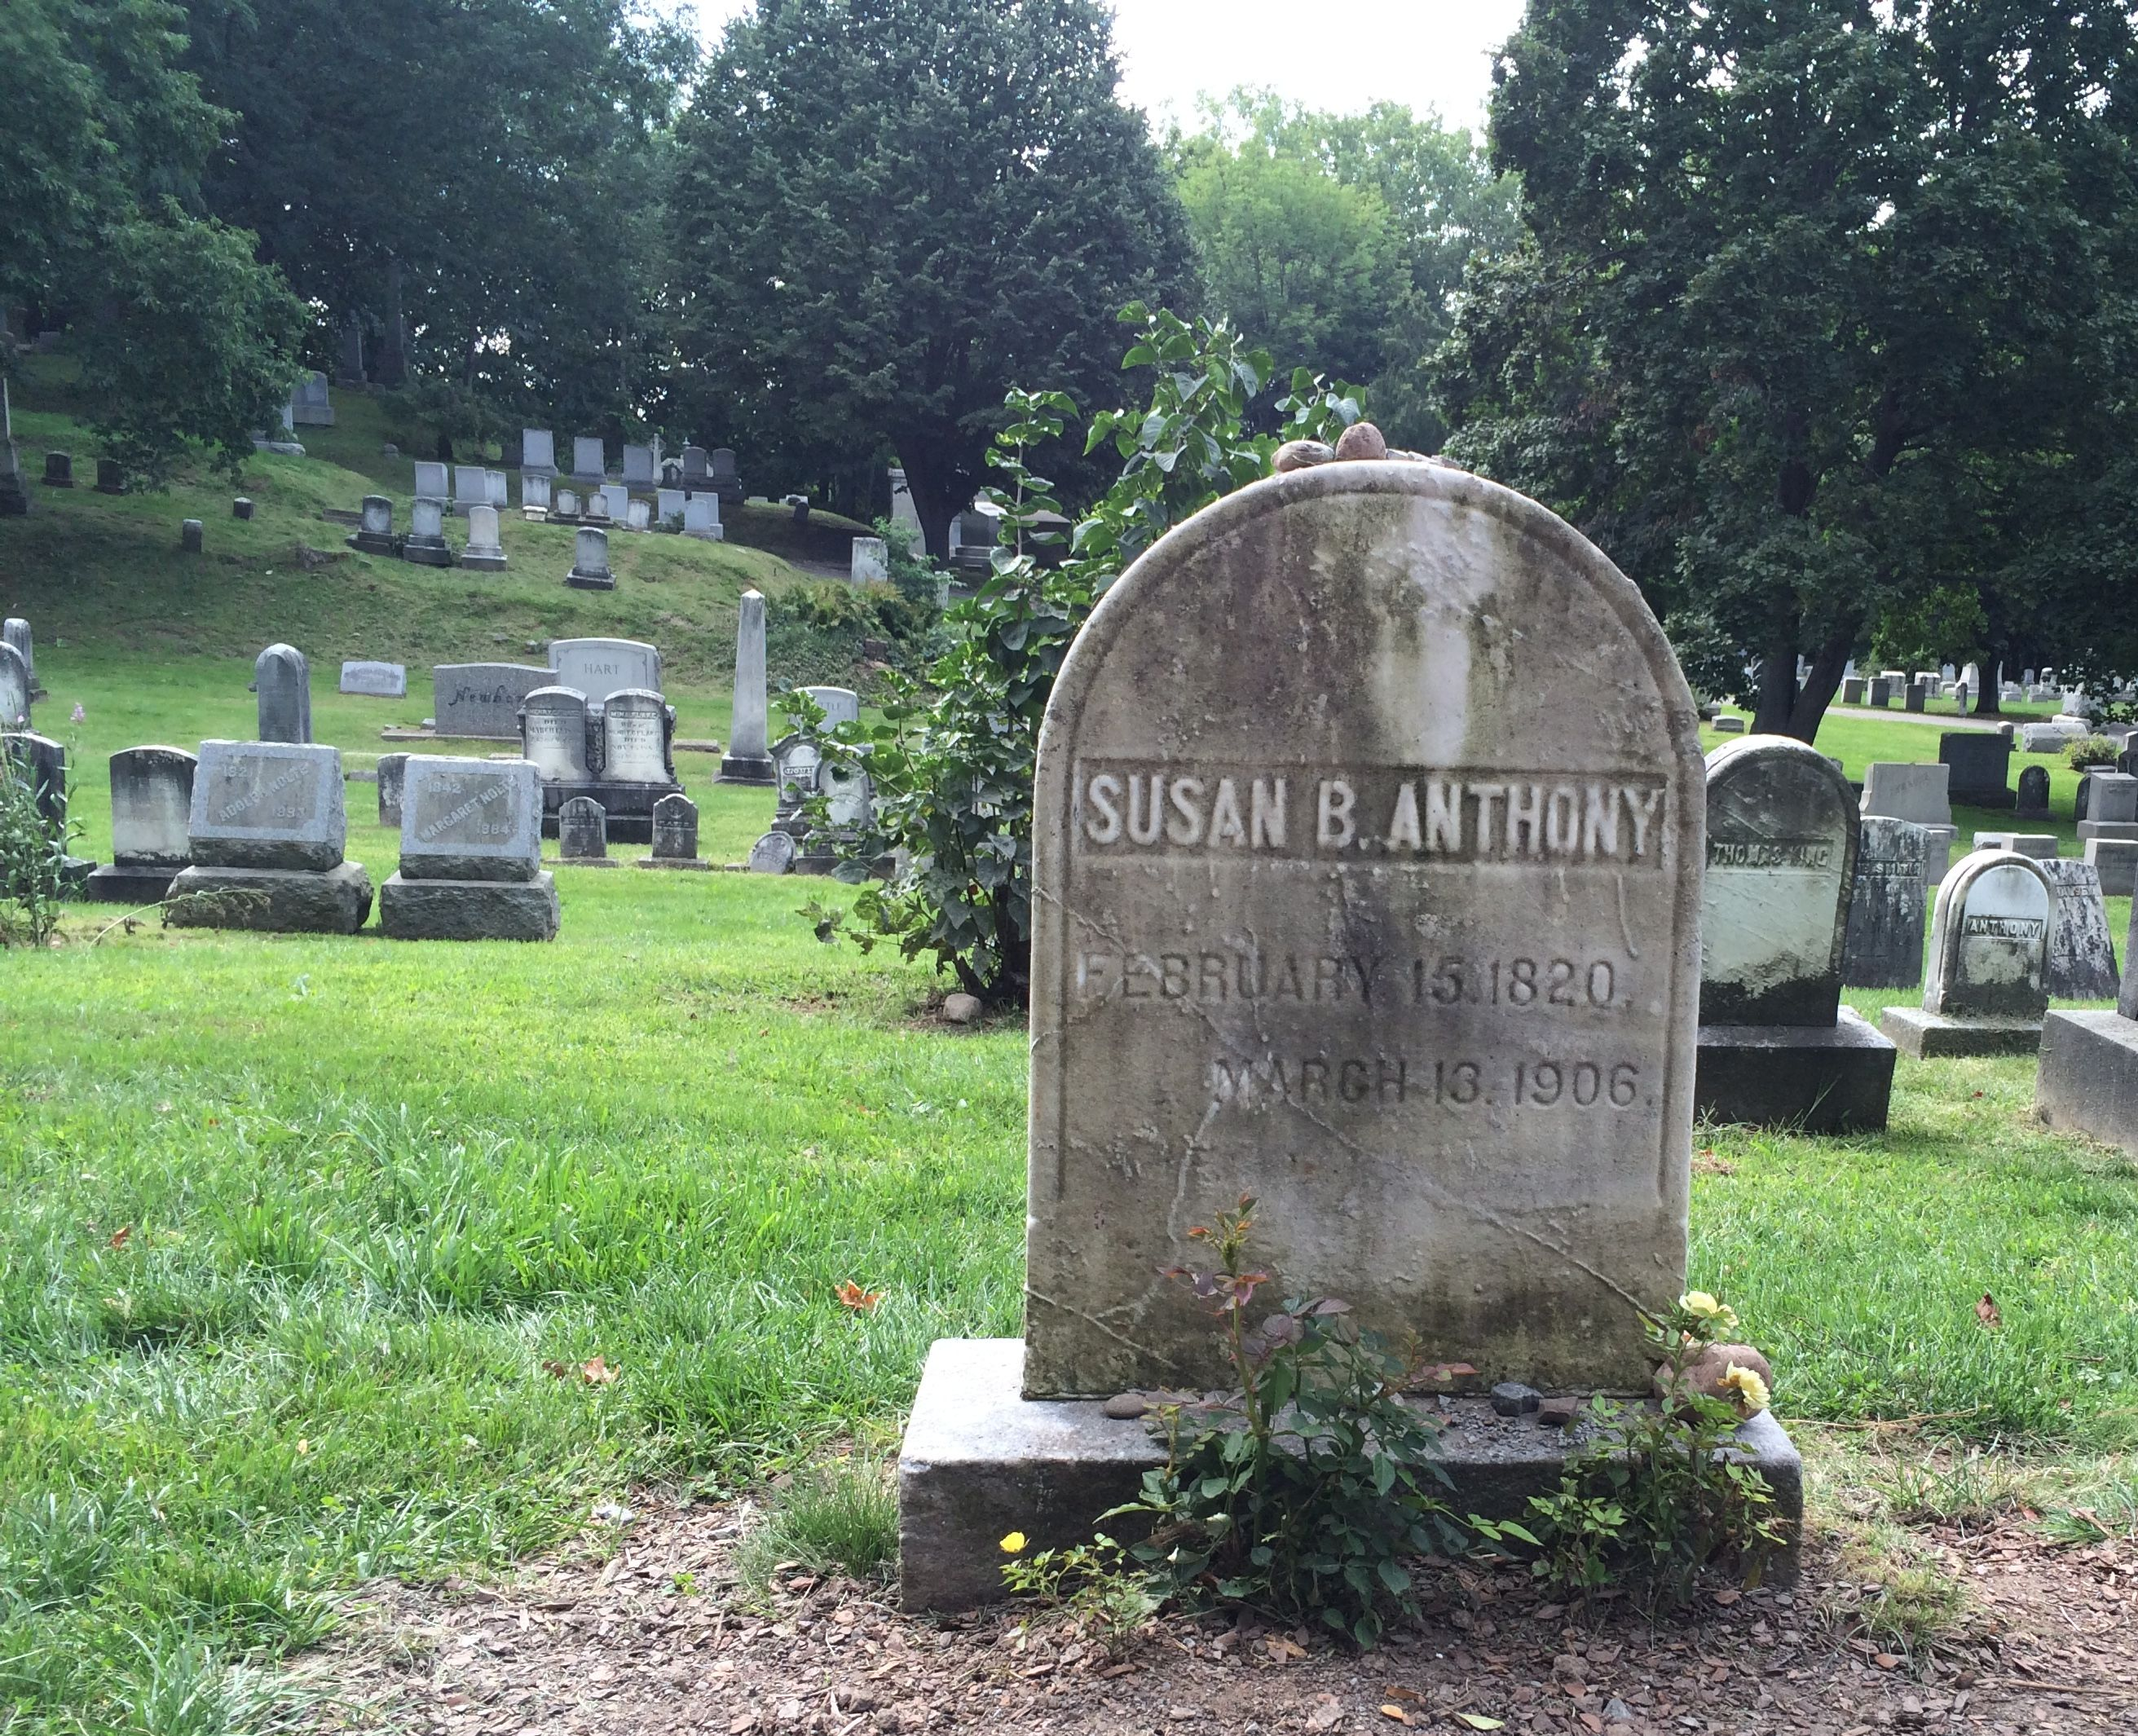 Susan' B. Anthony's Grave